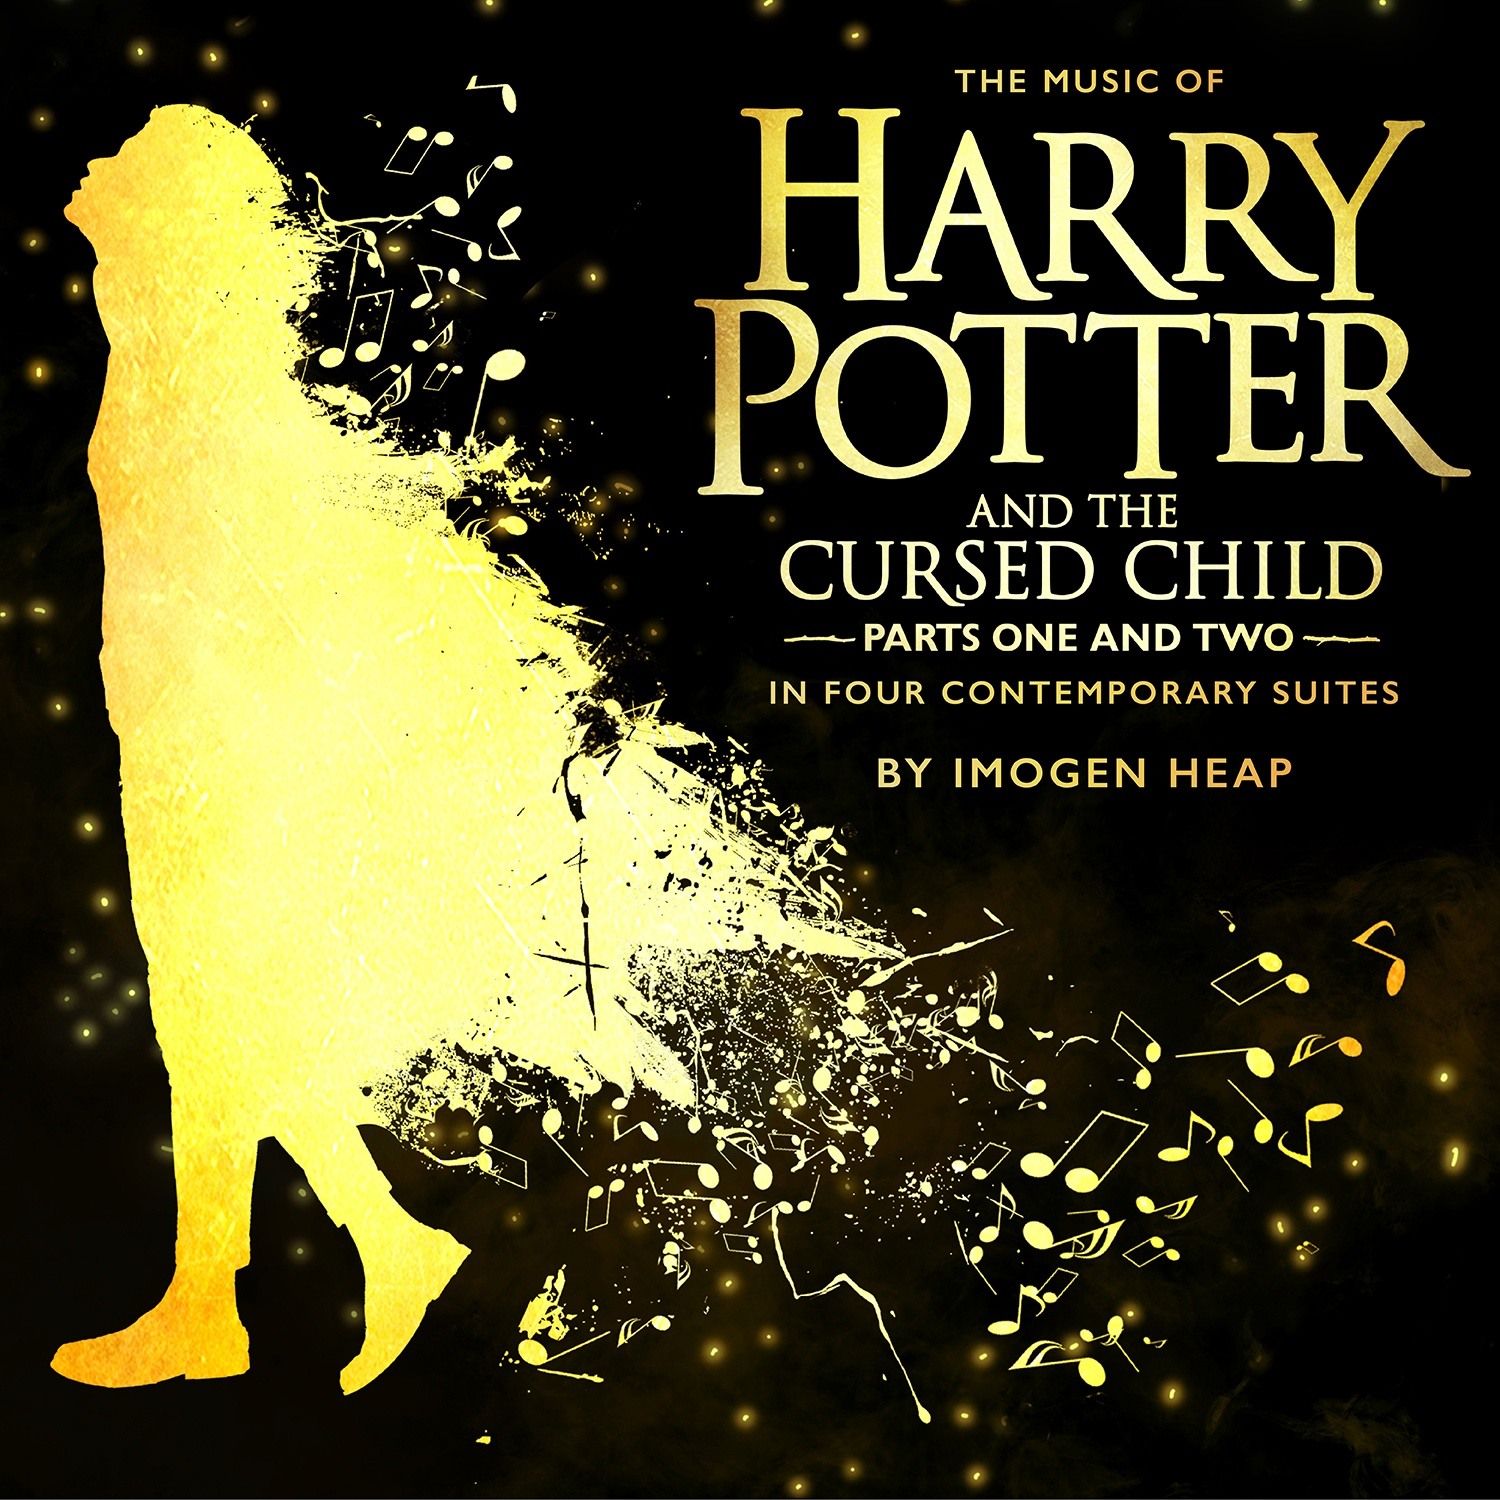 album_cover_-_the_music_of_harry_potter_and_the_cursed_child.jpg